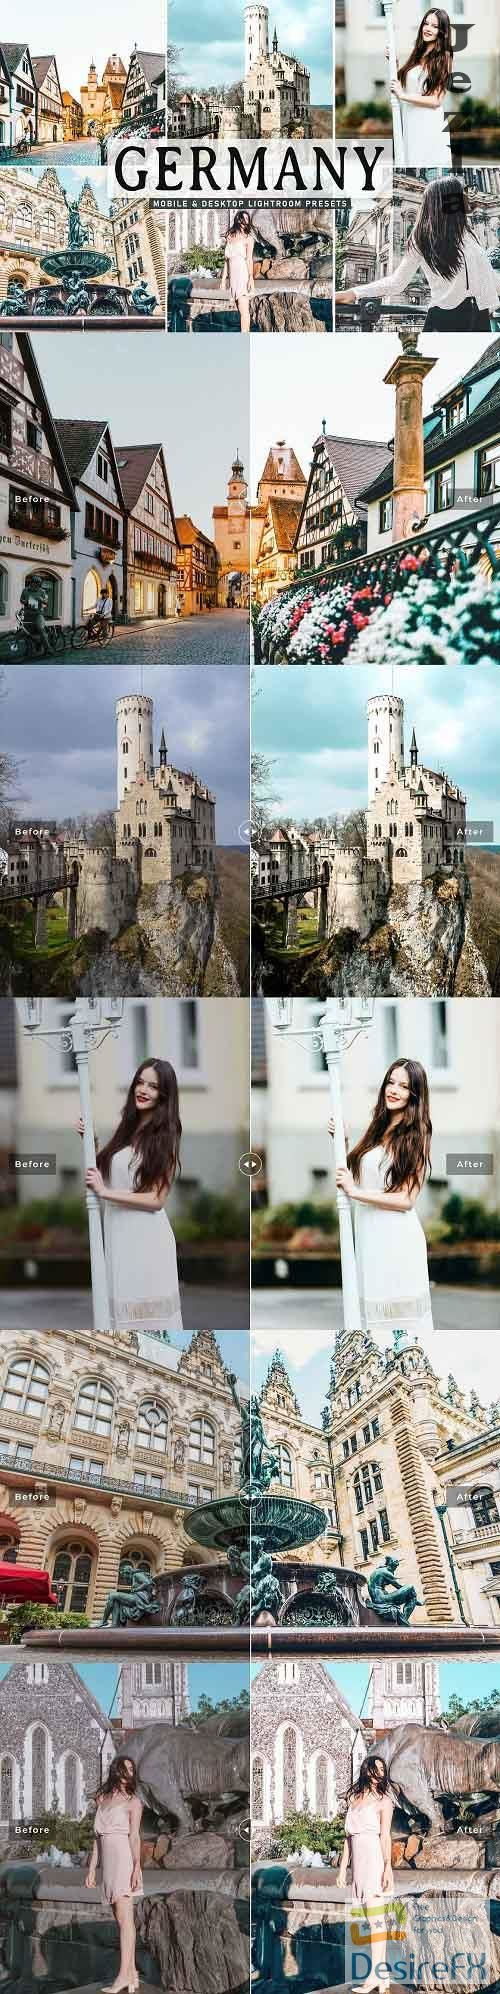 Germany Pro Lightroom Presets - 5539856 - Mobile & Desktop